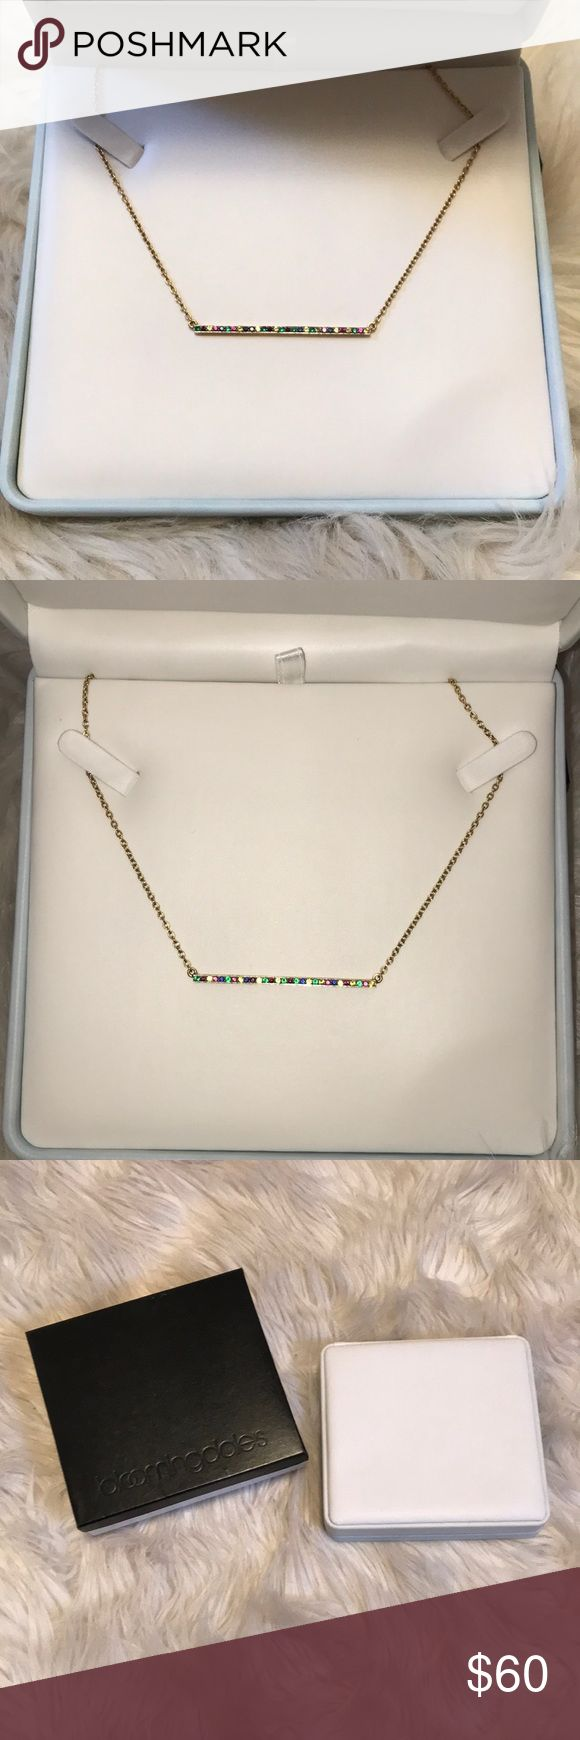 Elizabeth & James Jeweled Bar Necklace Worn twice. Excellent condition. Comes with jewelry box and gift box as seen in the photo. Beautiful gold bar with multi colored stones. Elizabeth and James Jewelry Necklaces